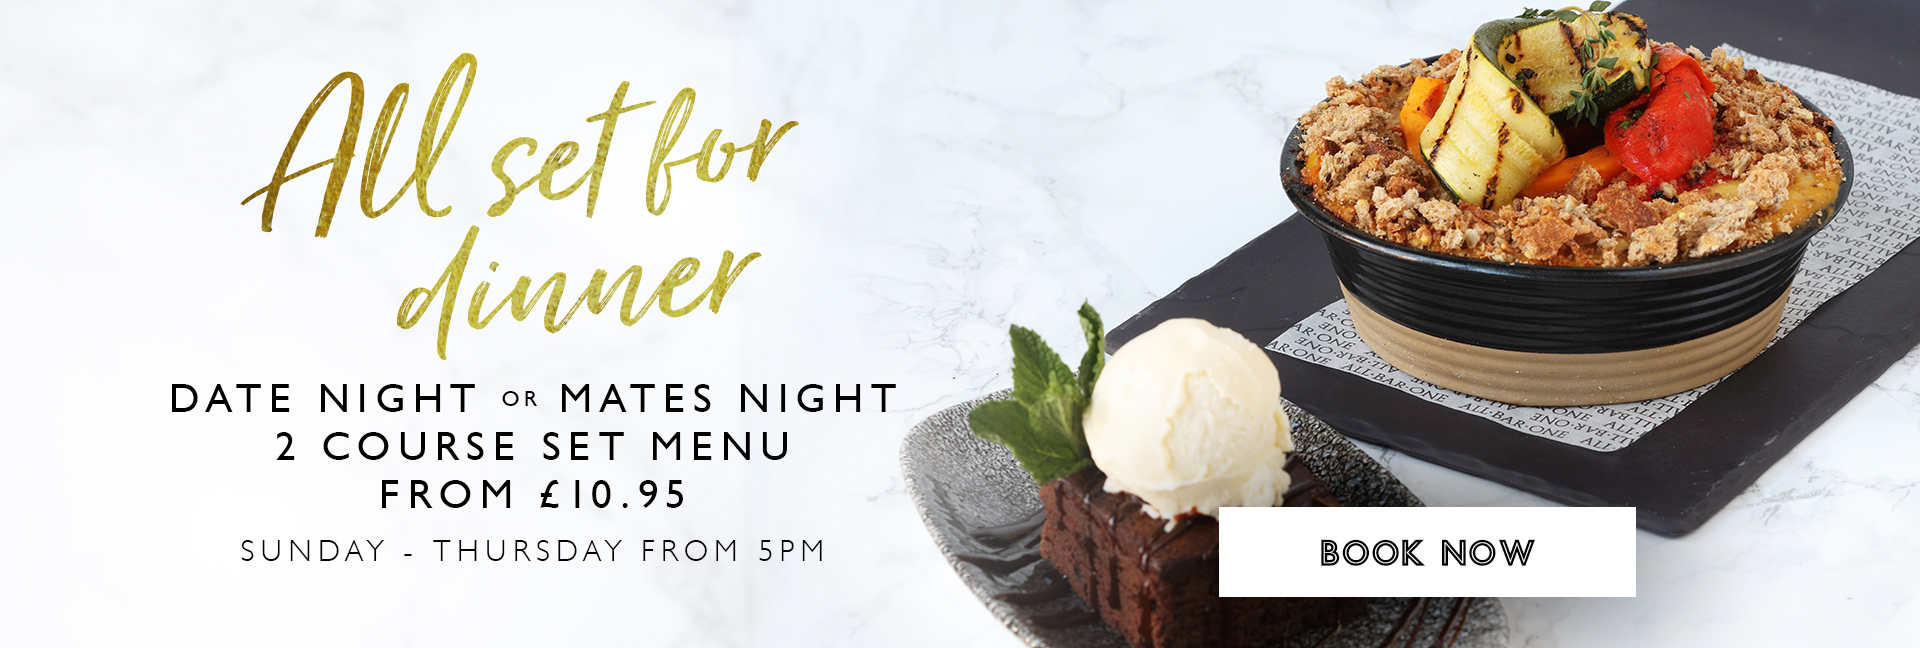 Date Night or Mate Night at All Bar One